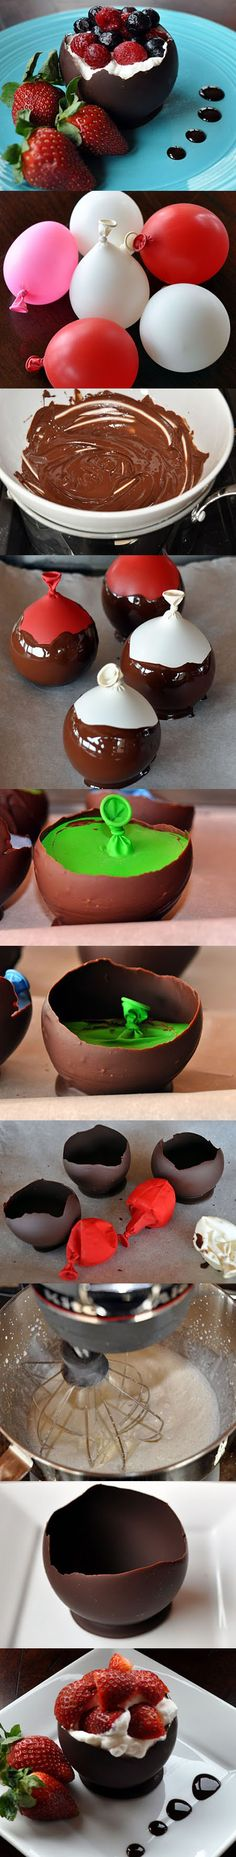 Chocolate cups made with balloons!